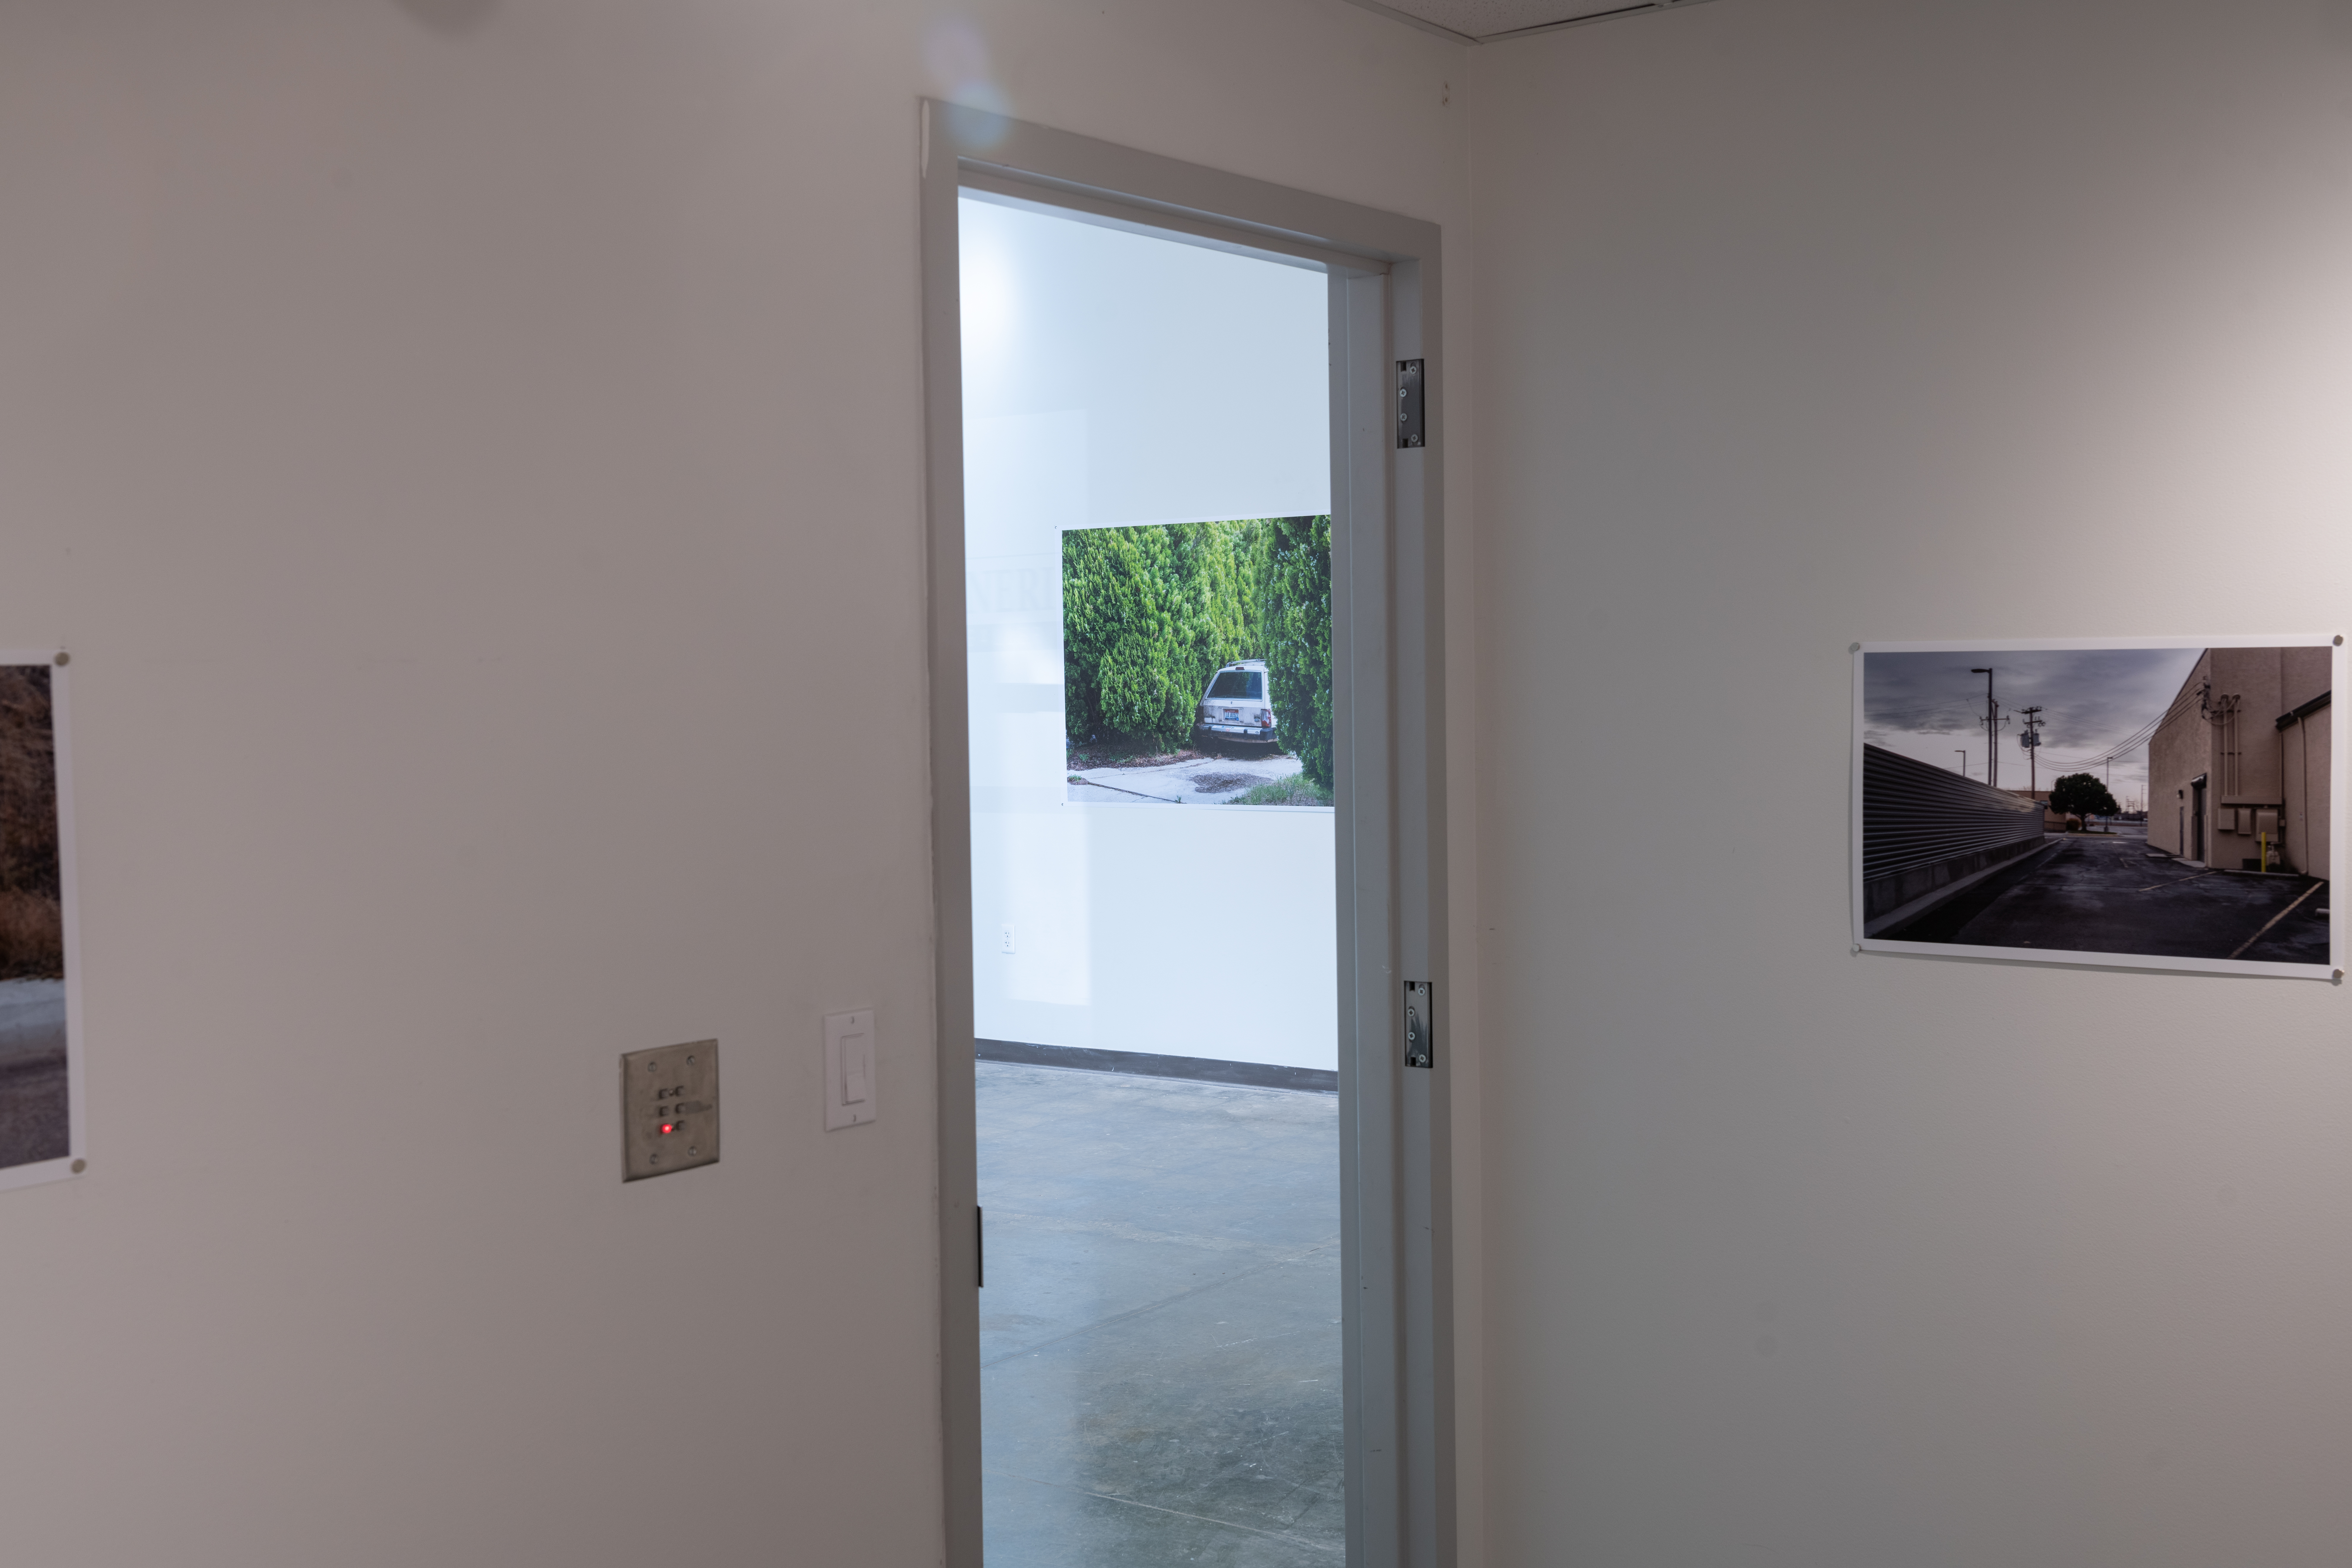 View of Zhang photo installation, right - photo of an alley with blacktop pavement, tan building right; and left - large shrubs enveloping the back of a car in a driveway.